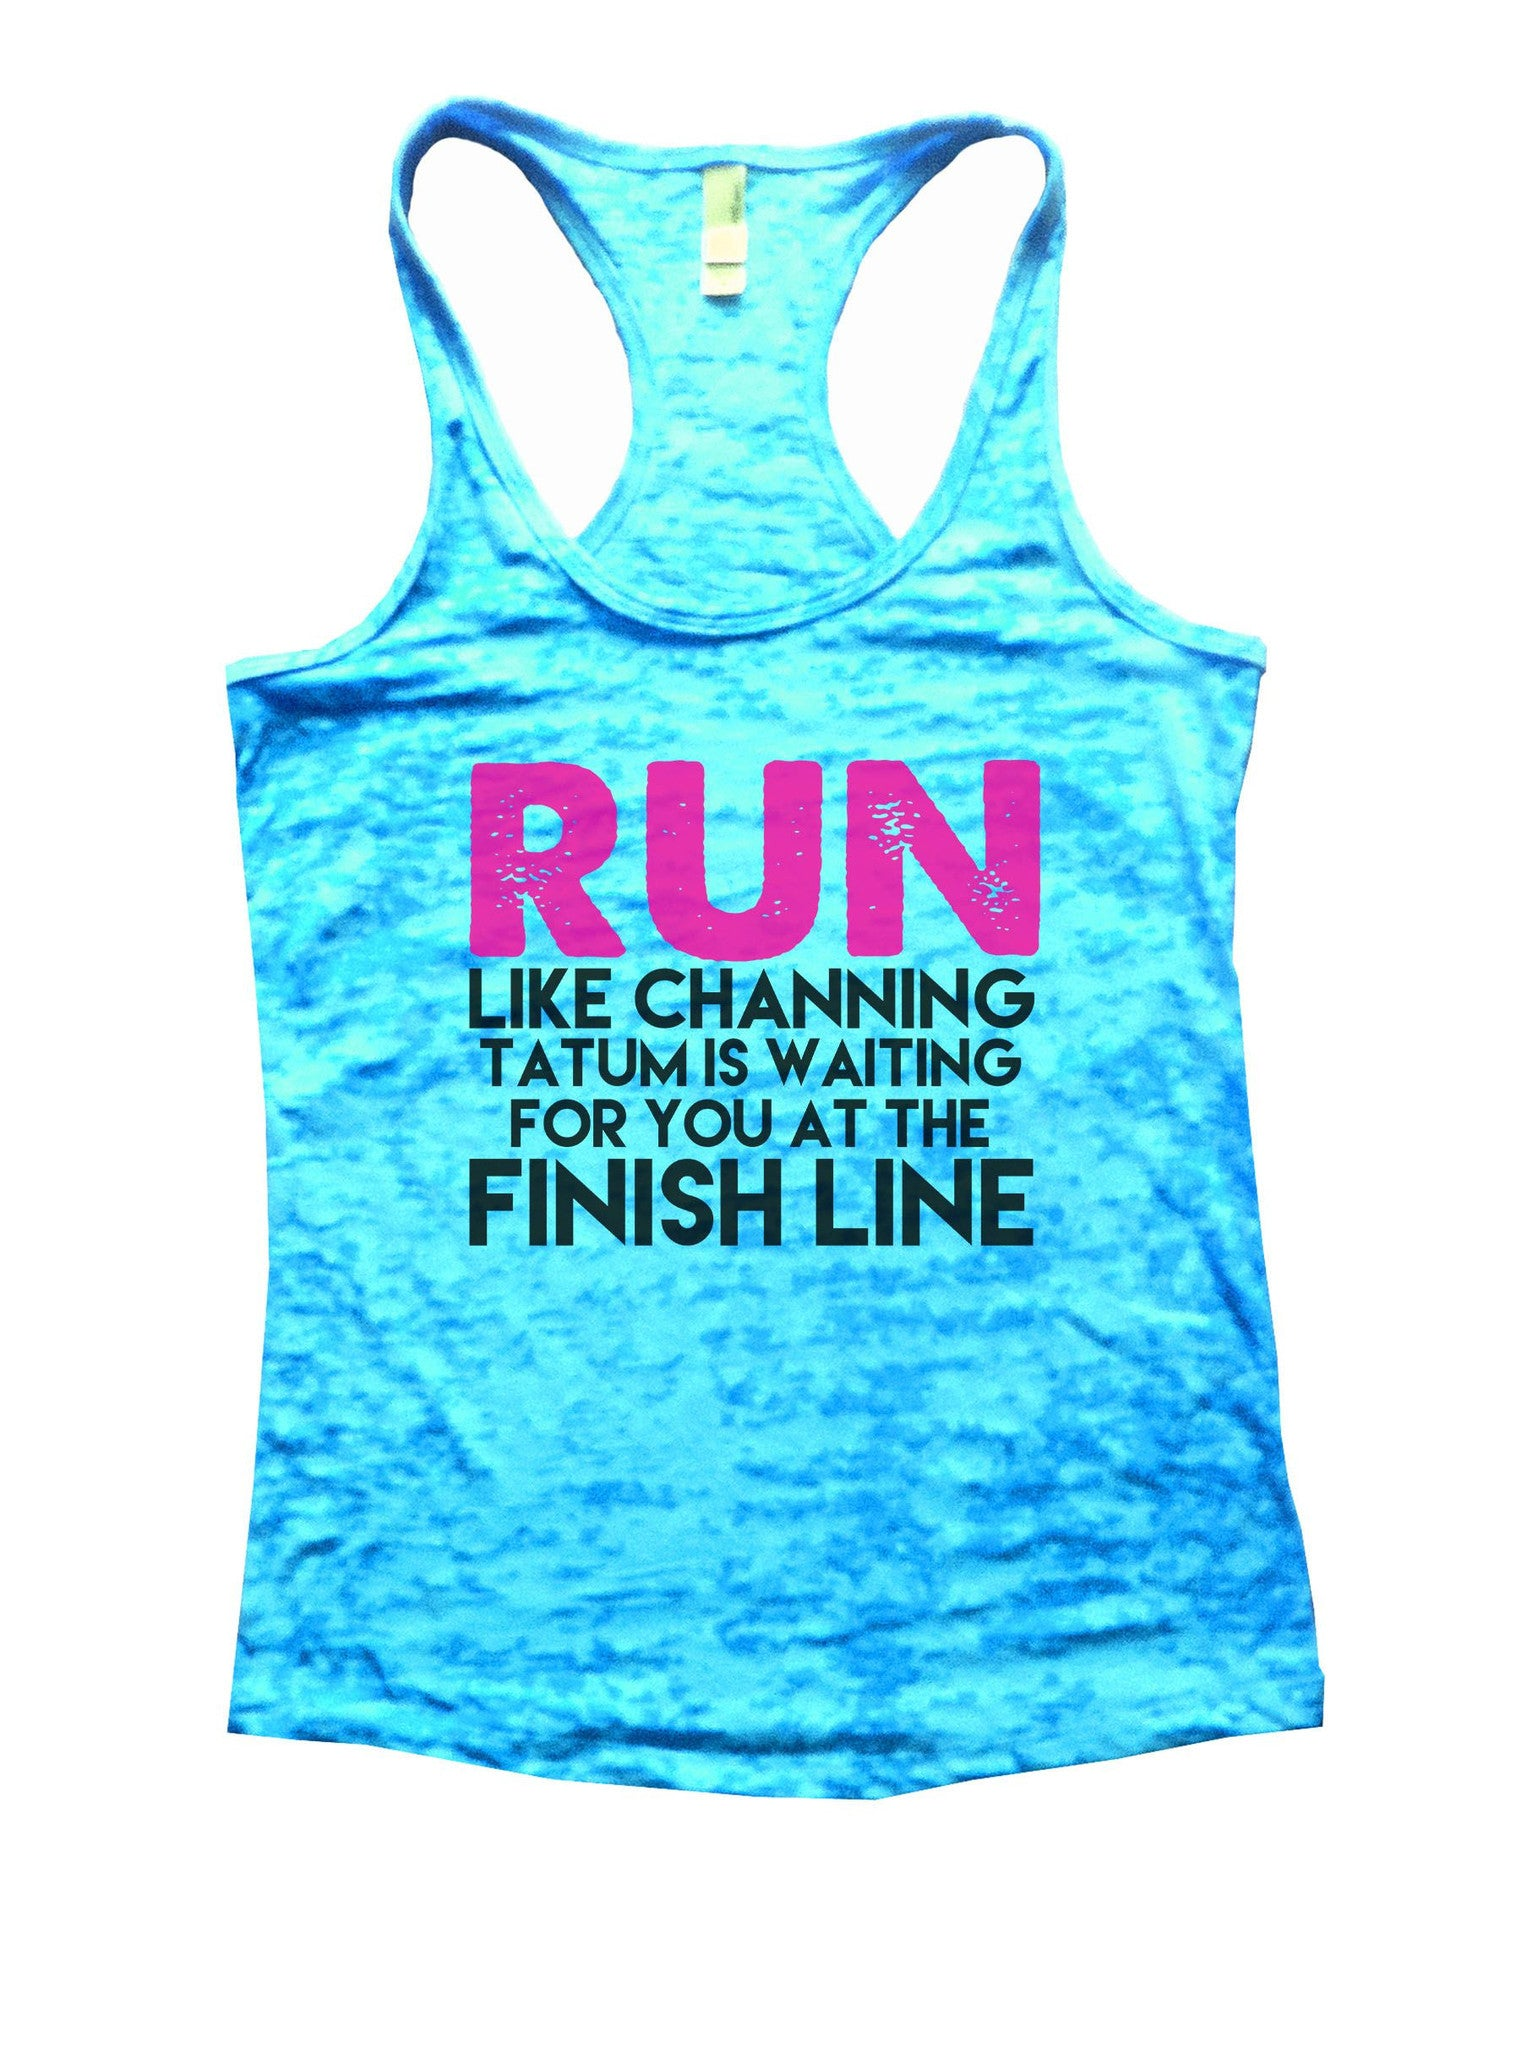 Run Like Channing Tatum Is Waiting For You At The Finish Line Burnout Tank Top By BurnoutTankTops.com - 872 - Funny Shirts Tank Tops Burnouts and Triblends  - 4